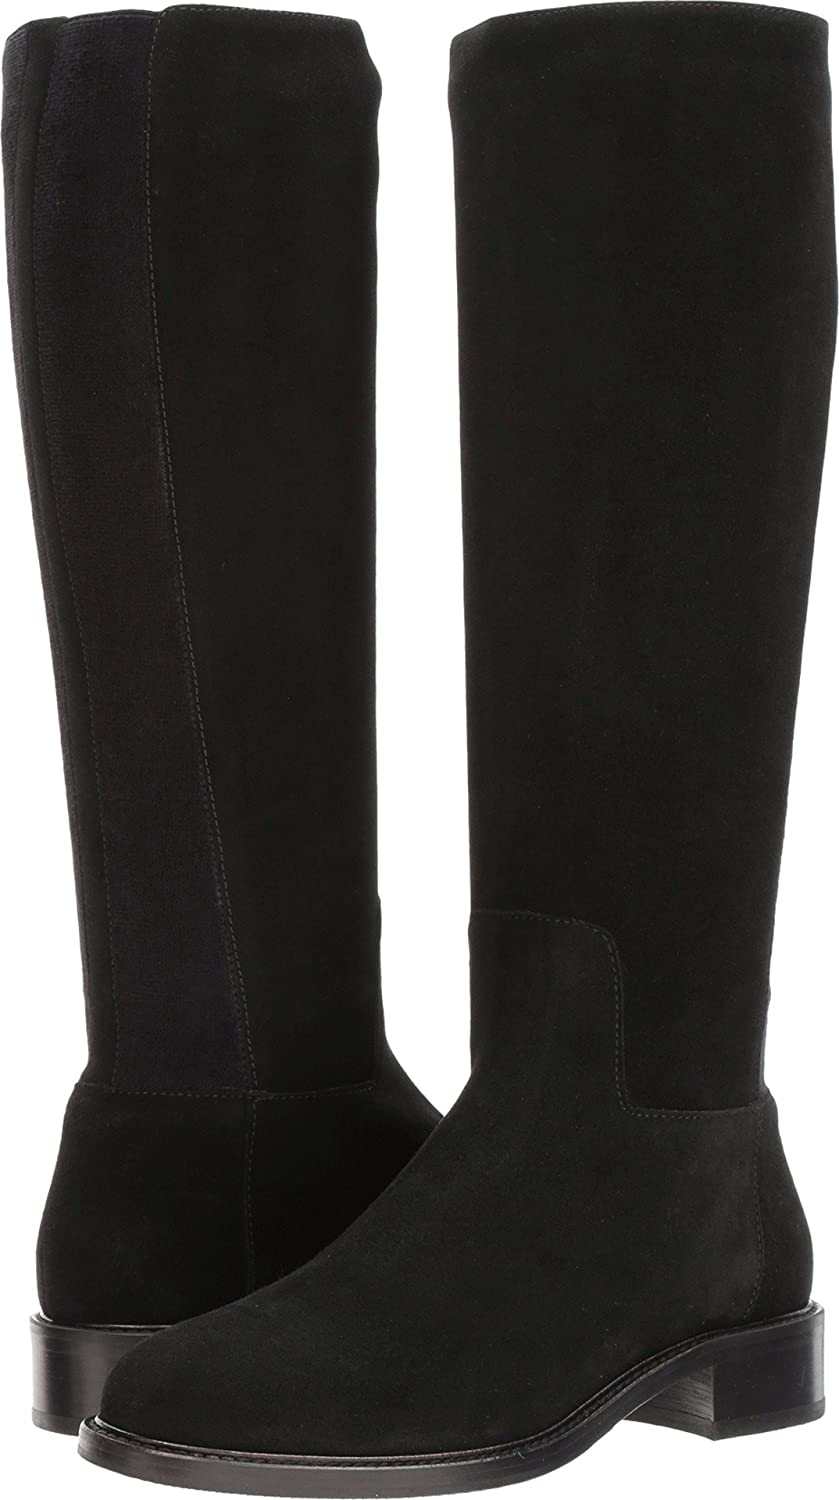 Aquatalia Women's Bryana Calf Knee High Boot B071CH16T4 11 B(M) US|Black Suede